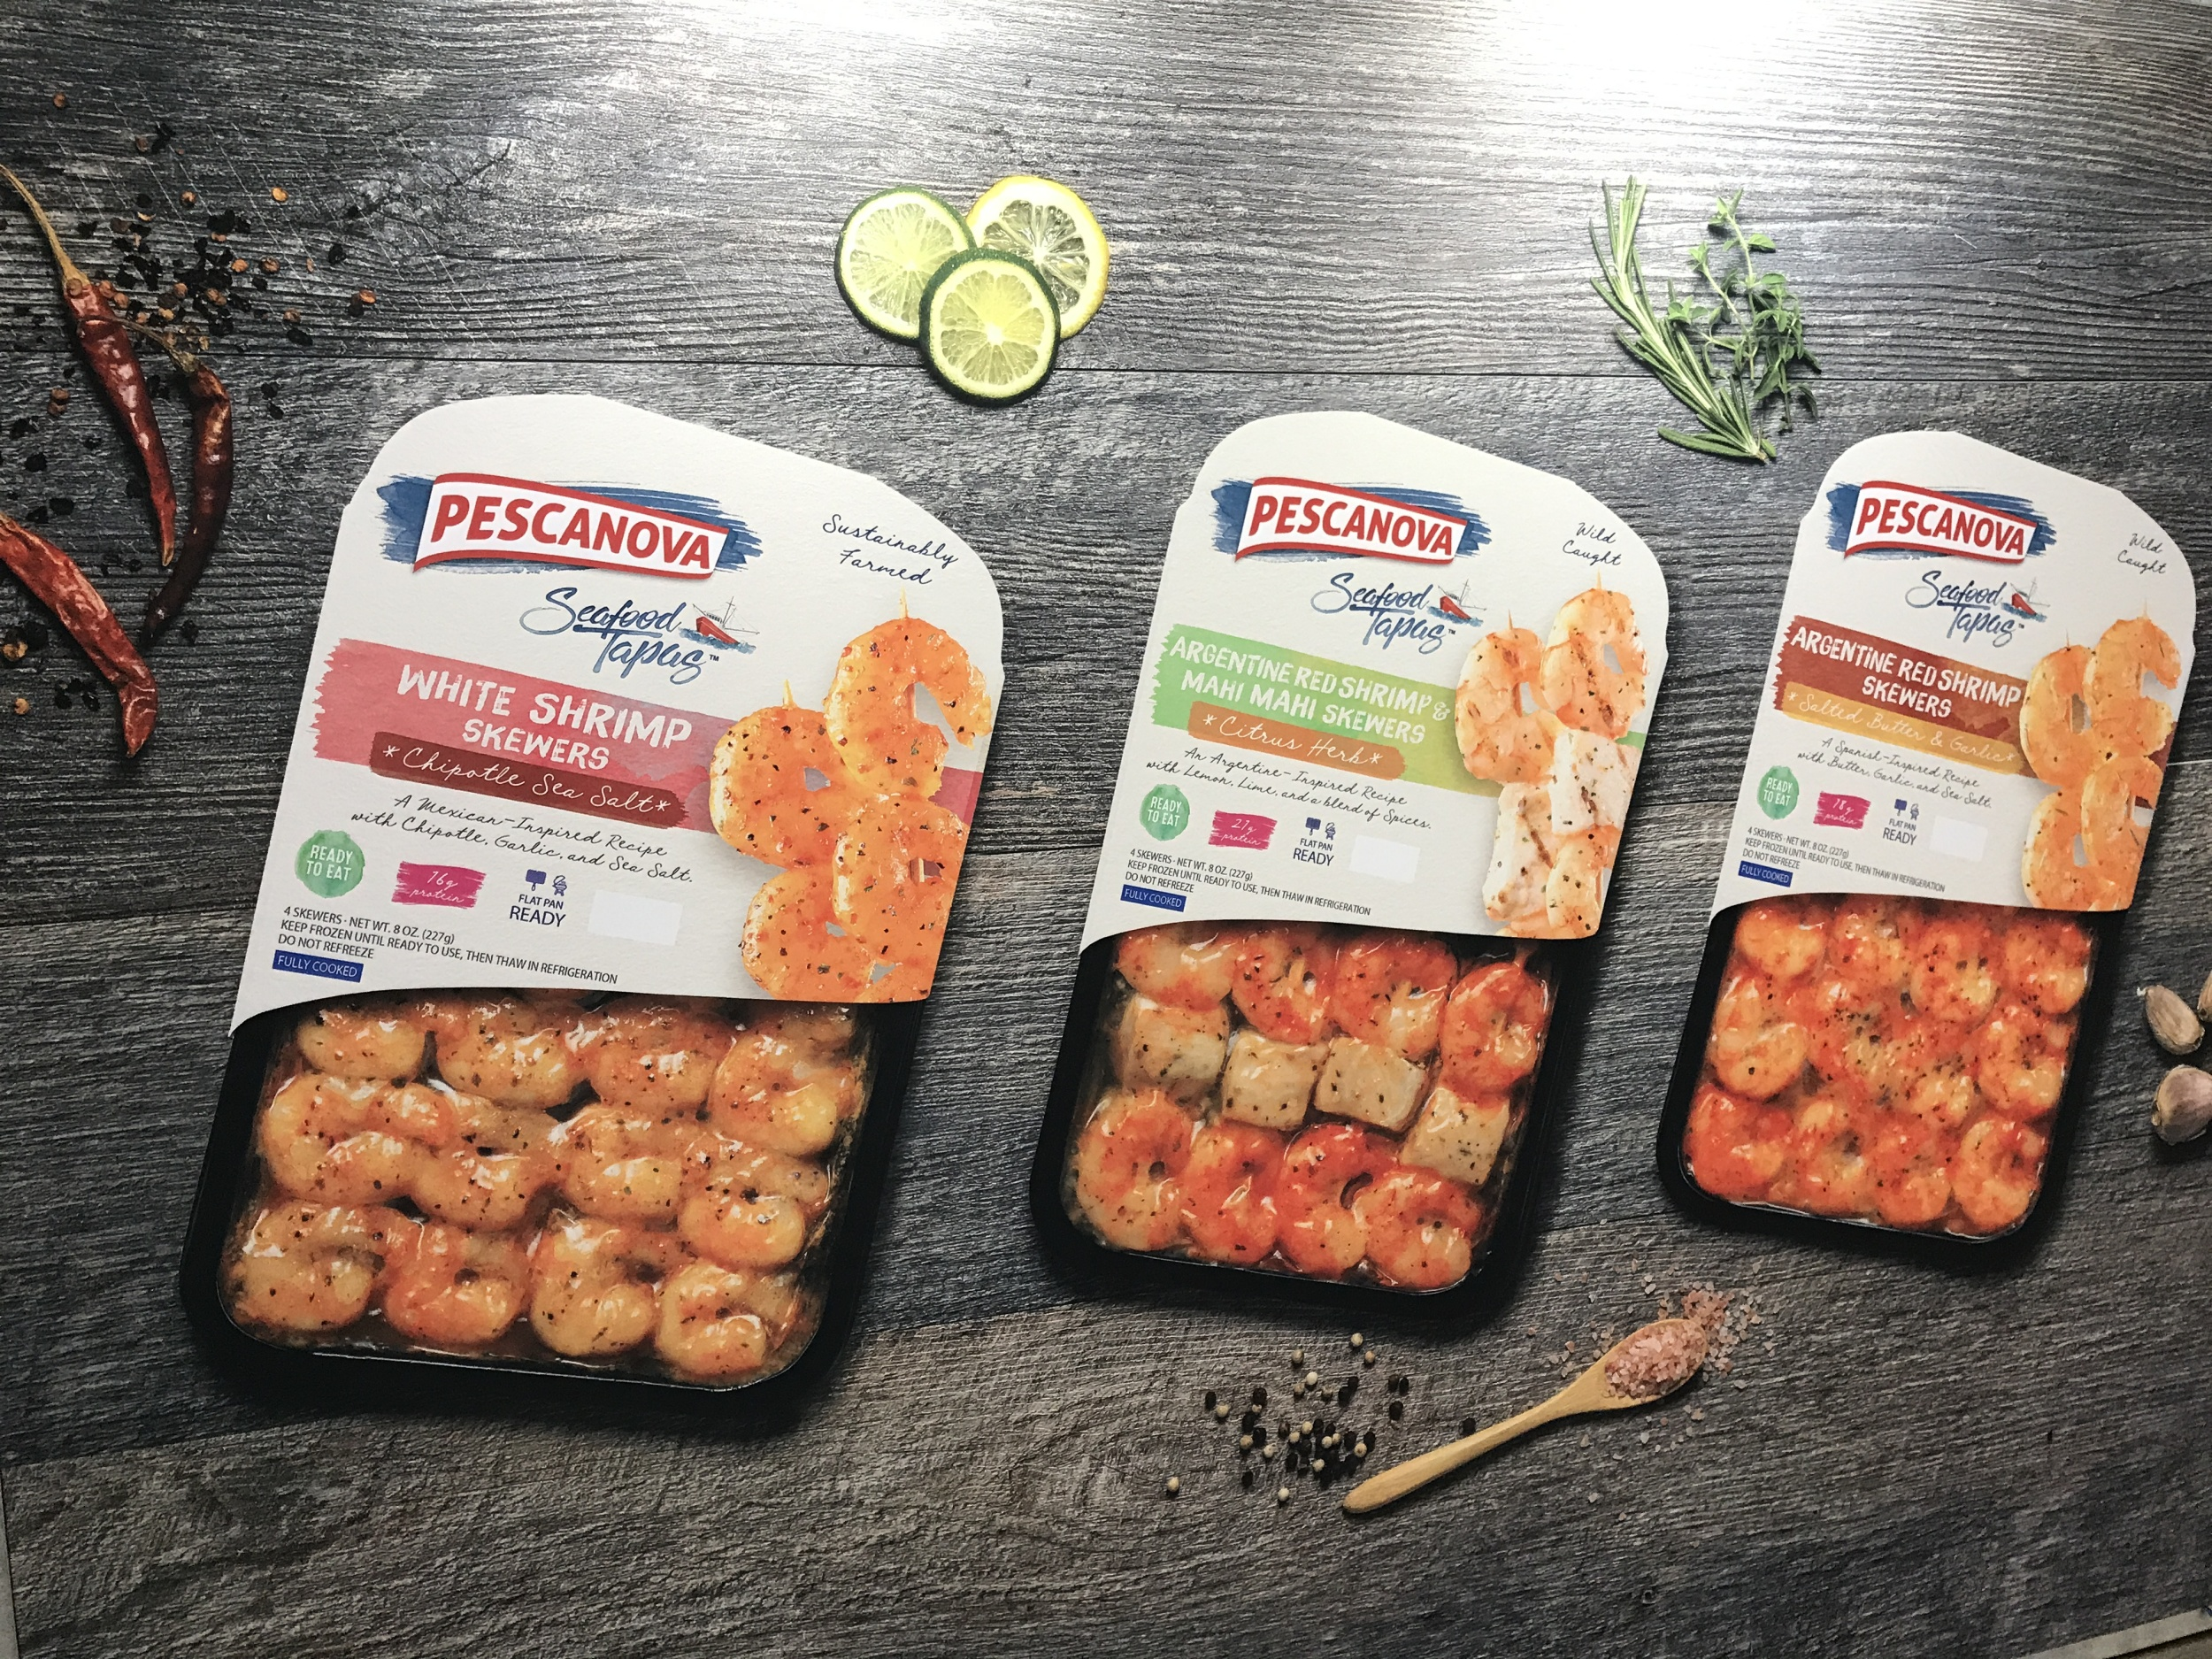 Boston 2019: Indian shrimp production to increase 450,000t by 2022